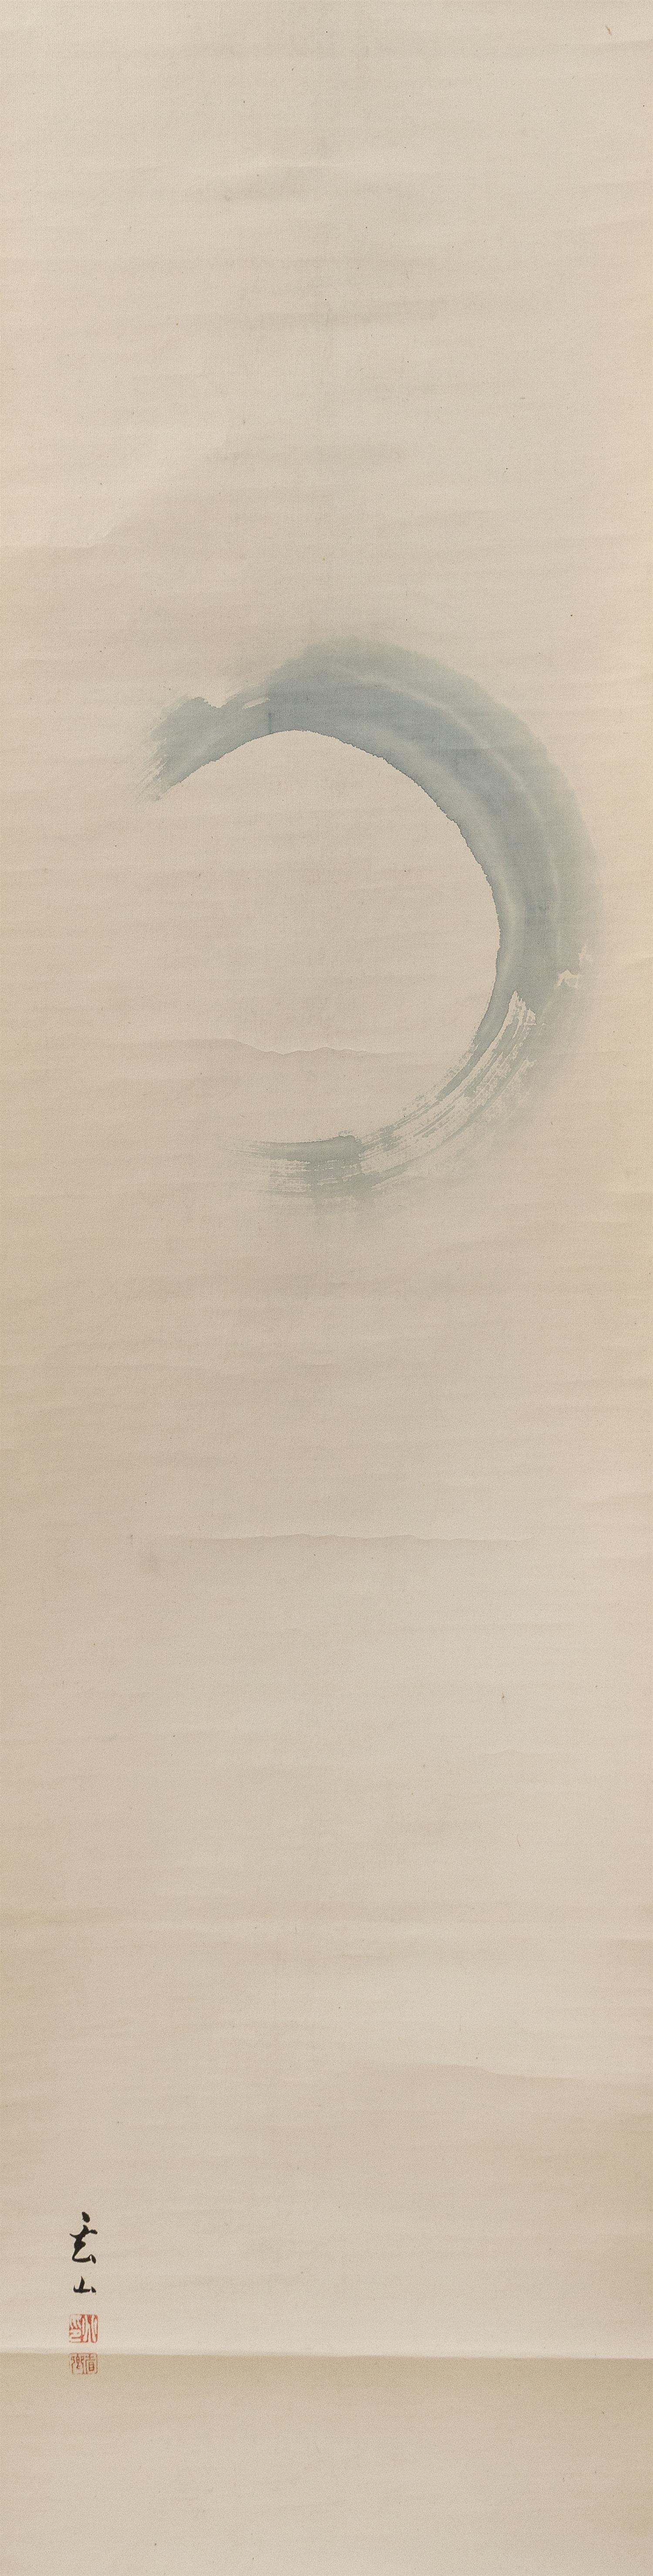 """JAPANESE ZENGA SCROLL PAINTING ON PAPER BY KAZINO GENZAN Depicts a tea ceremony moon. 49.25"""" x 12.25"""". Provenance: The Symmes / Shir..."""